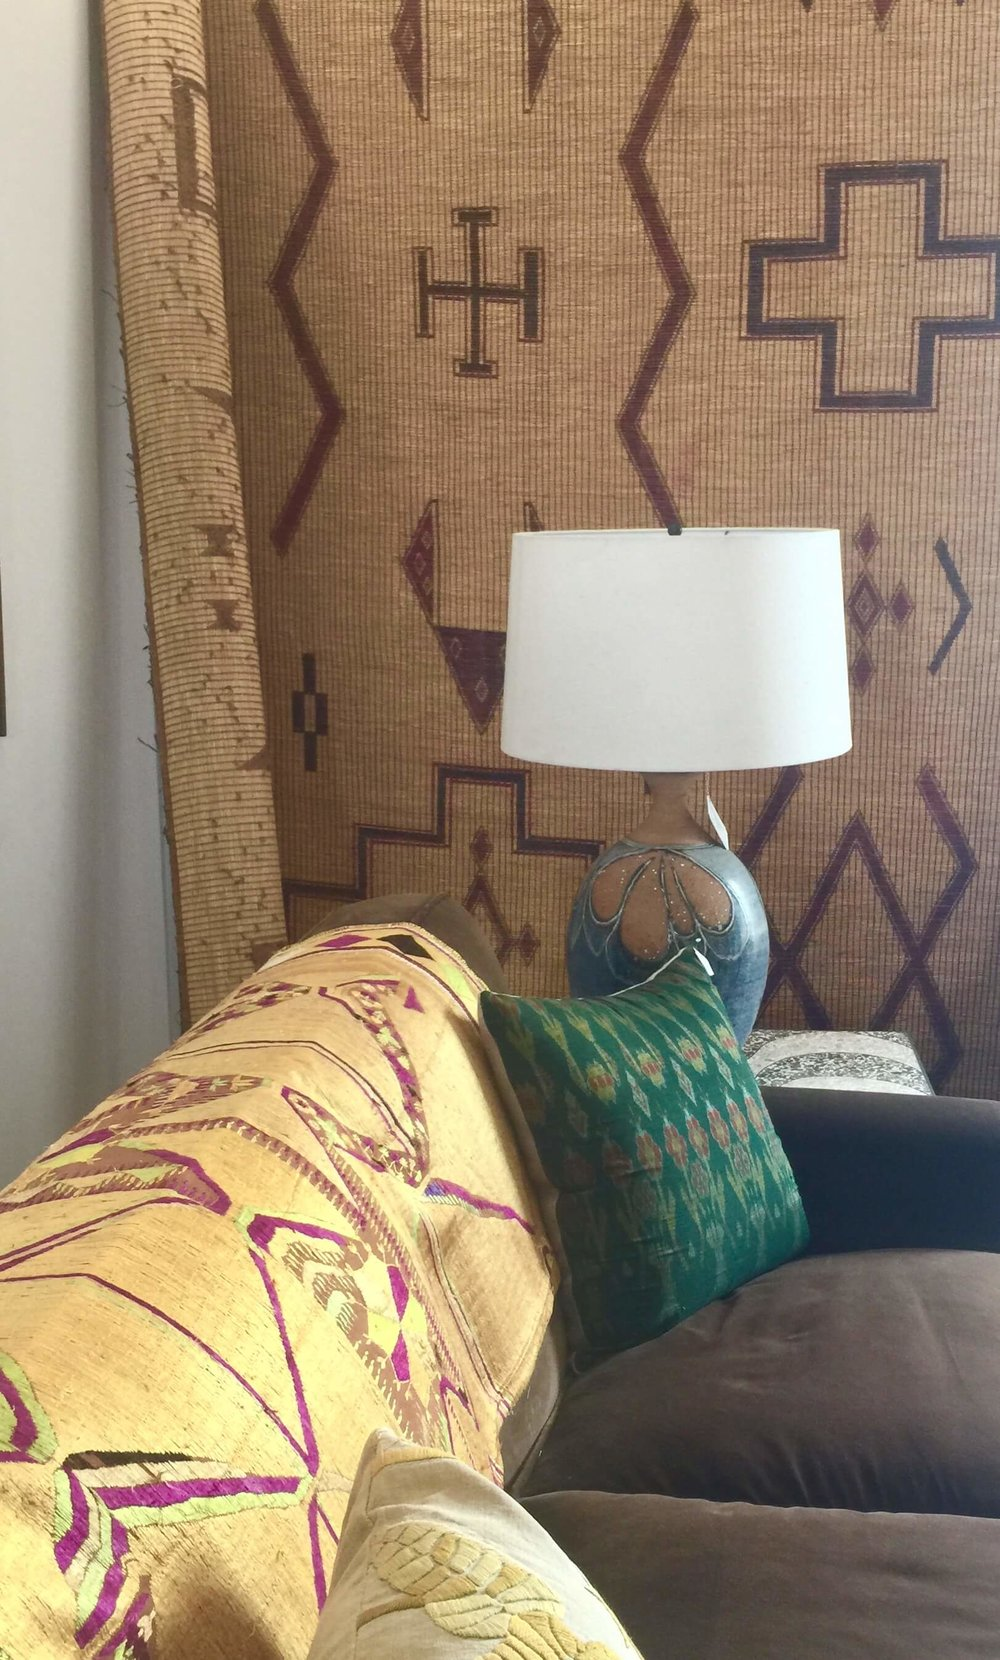 Vintage rugs, handmade ceramic lamps and colorful pillows in Hollywood at Home, Los Angeles home furnishings shop #vintagerug #decoratingideas